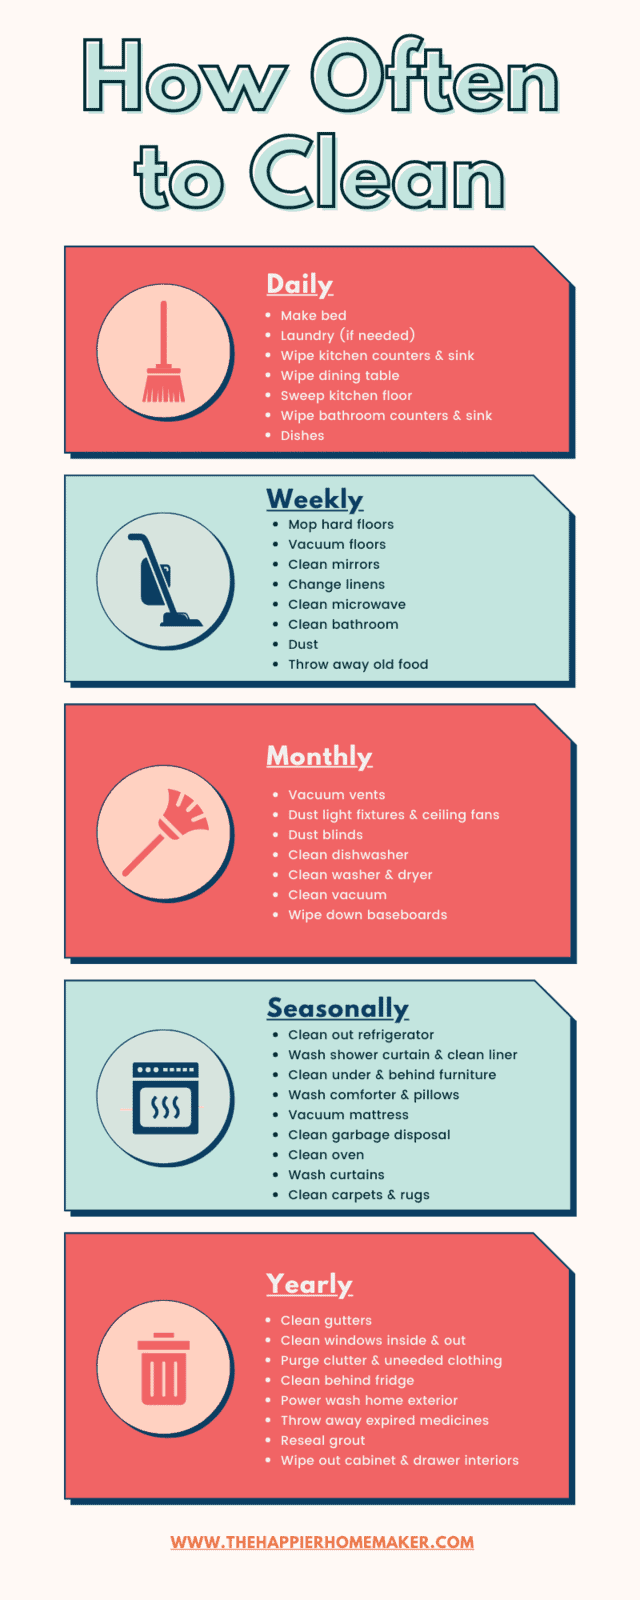 How often to clean infographic